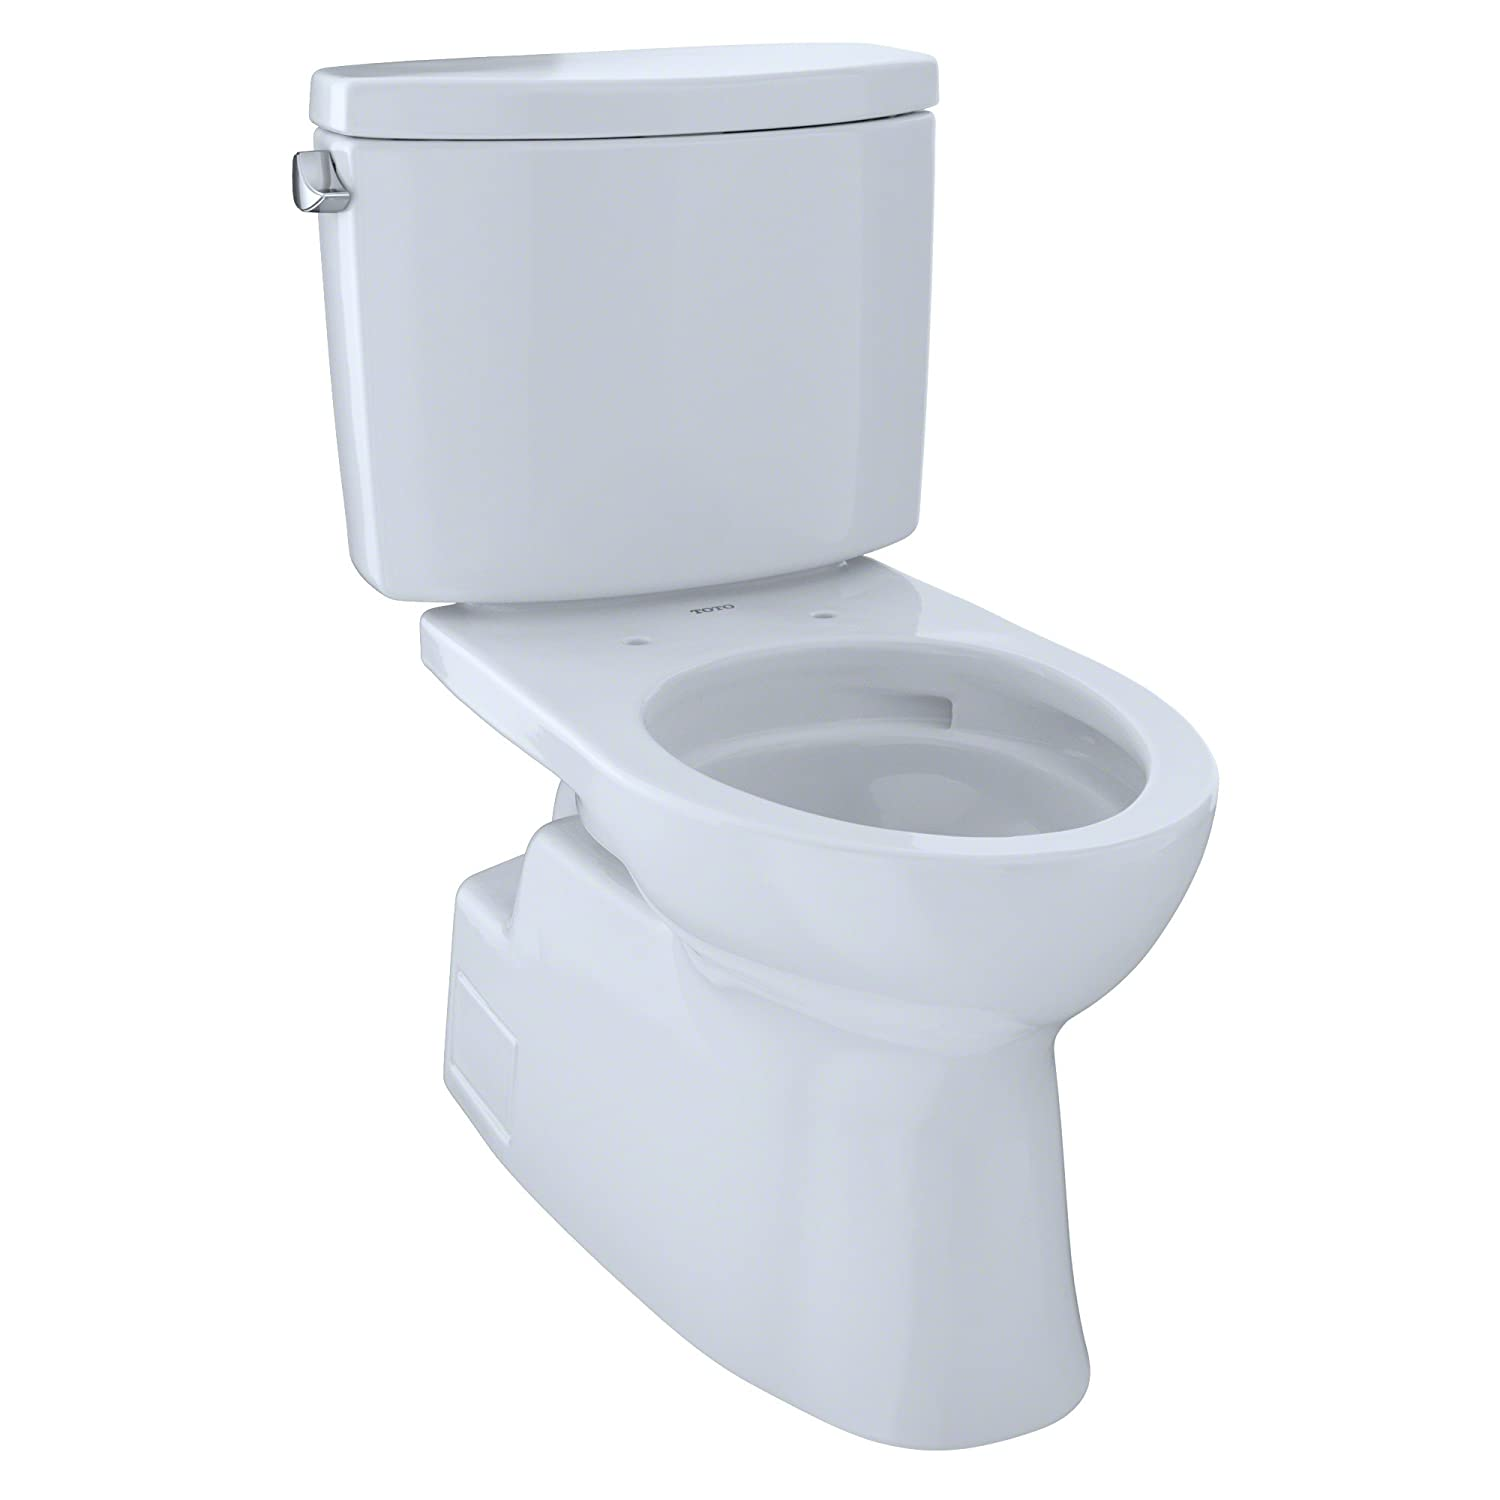 Toto CST474CEFGNo.01 Vespin II Two-Piece High-Efficiency Toilet ...